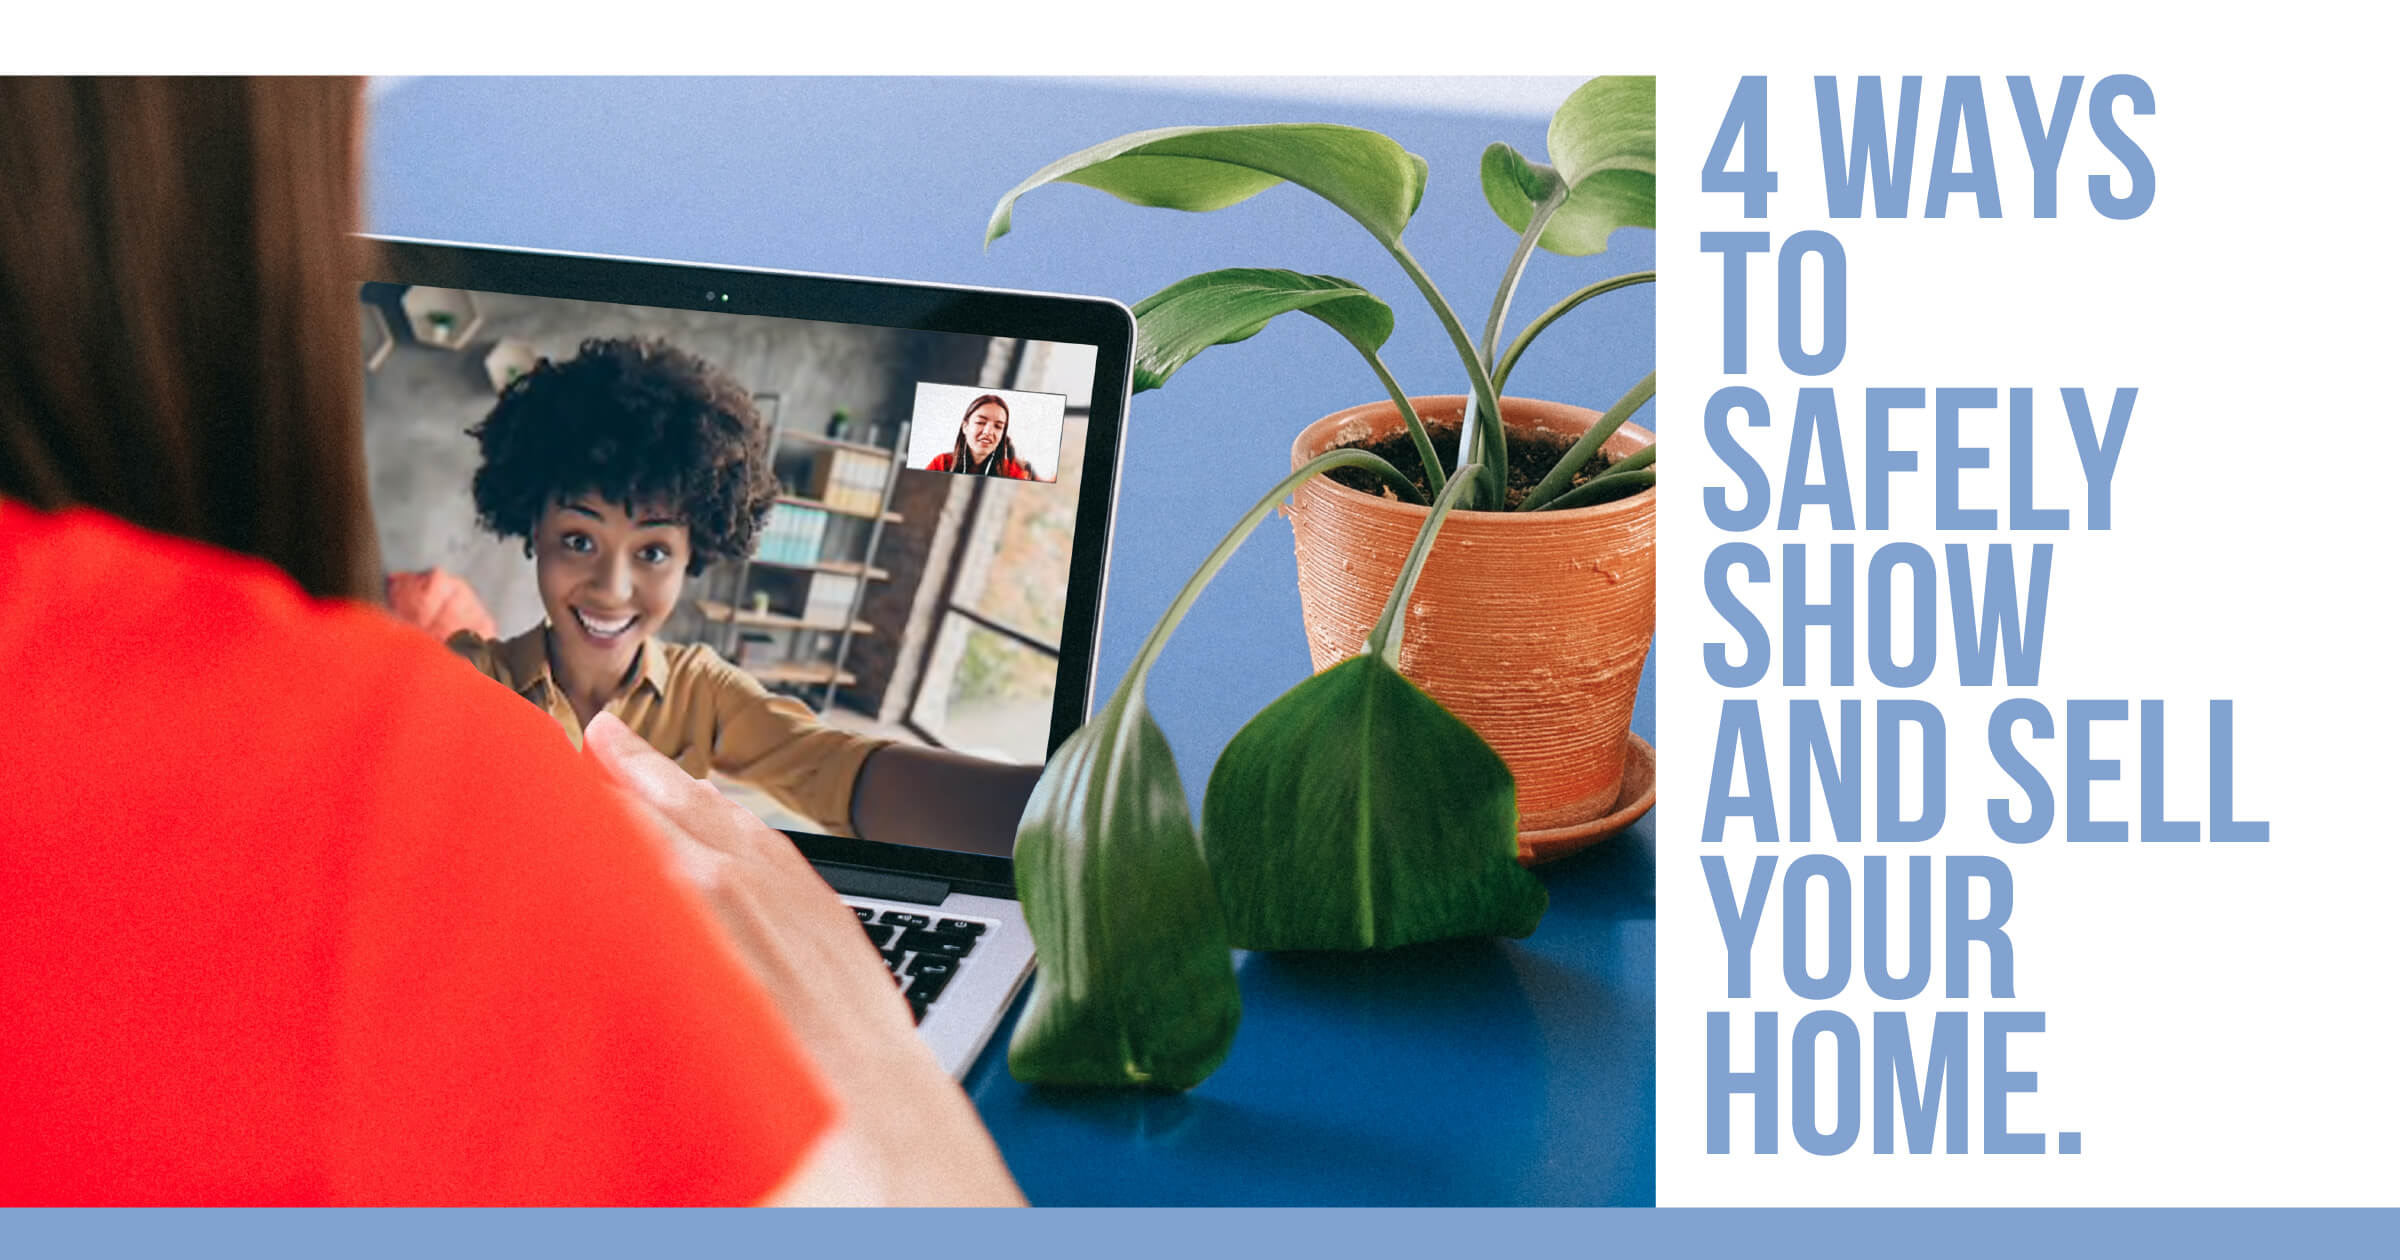 4 Ways To Safely Show and Sell Your Home